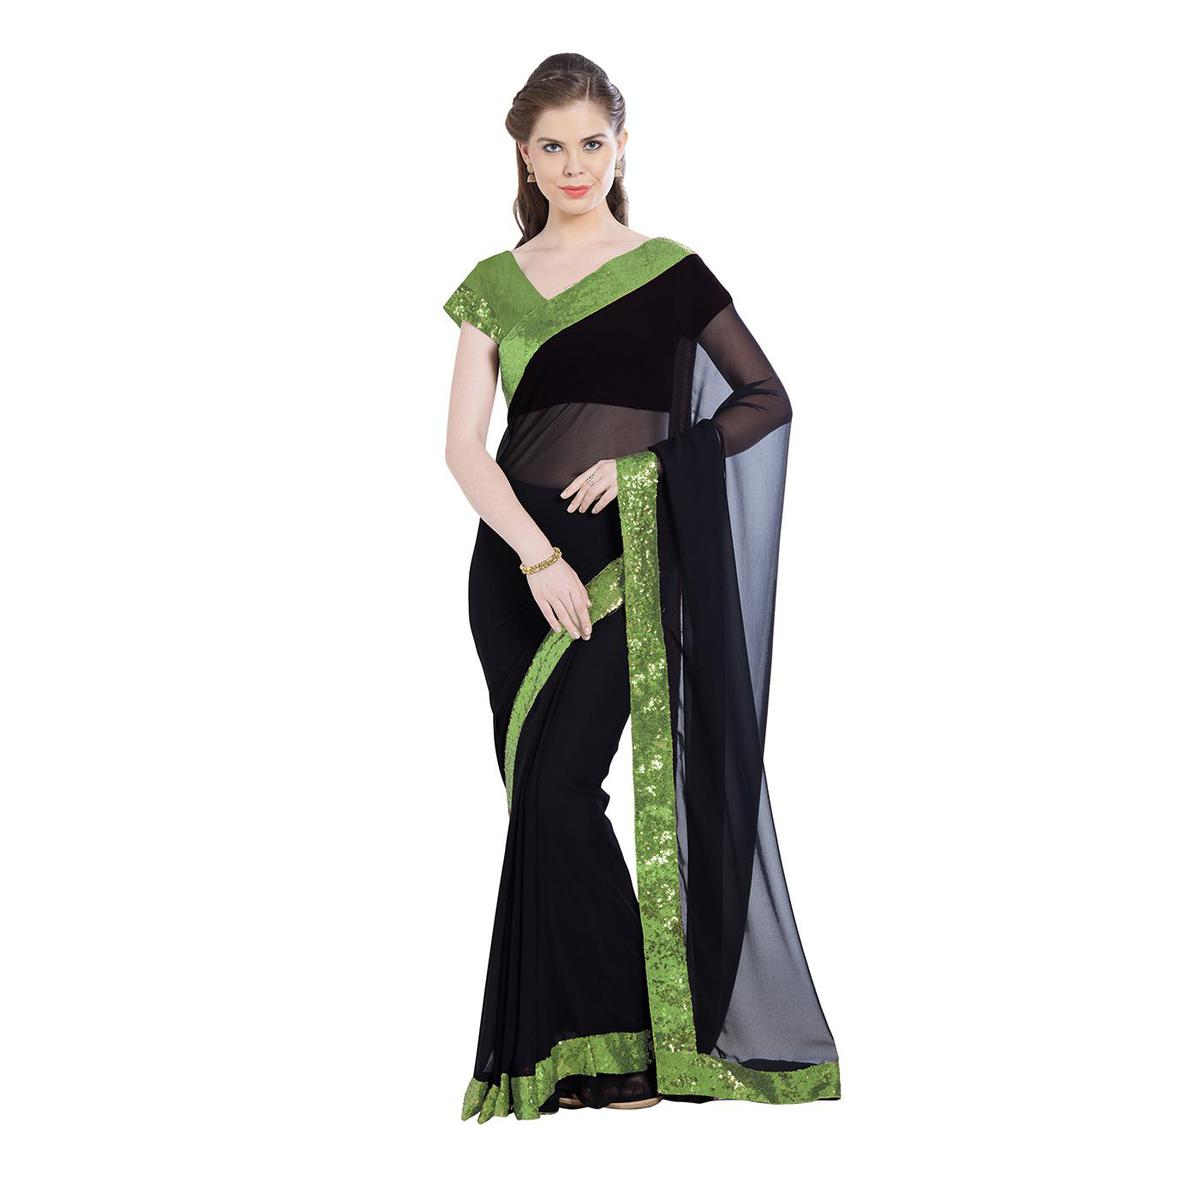 Demanding Black Colored Party Wear Georgette Saree With Matching Blouse.